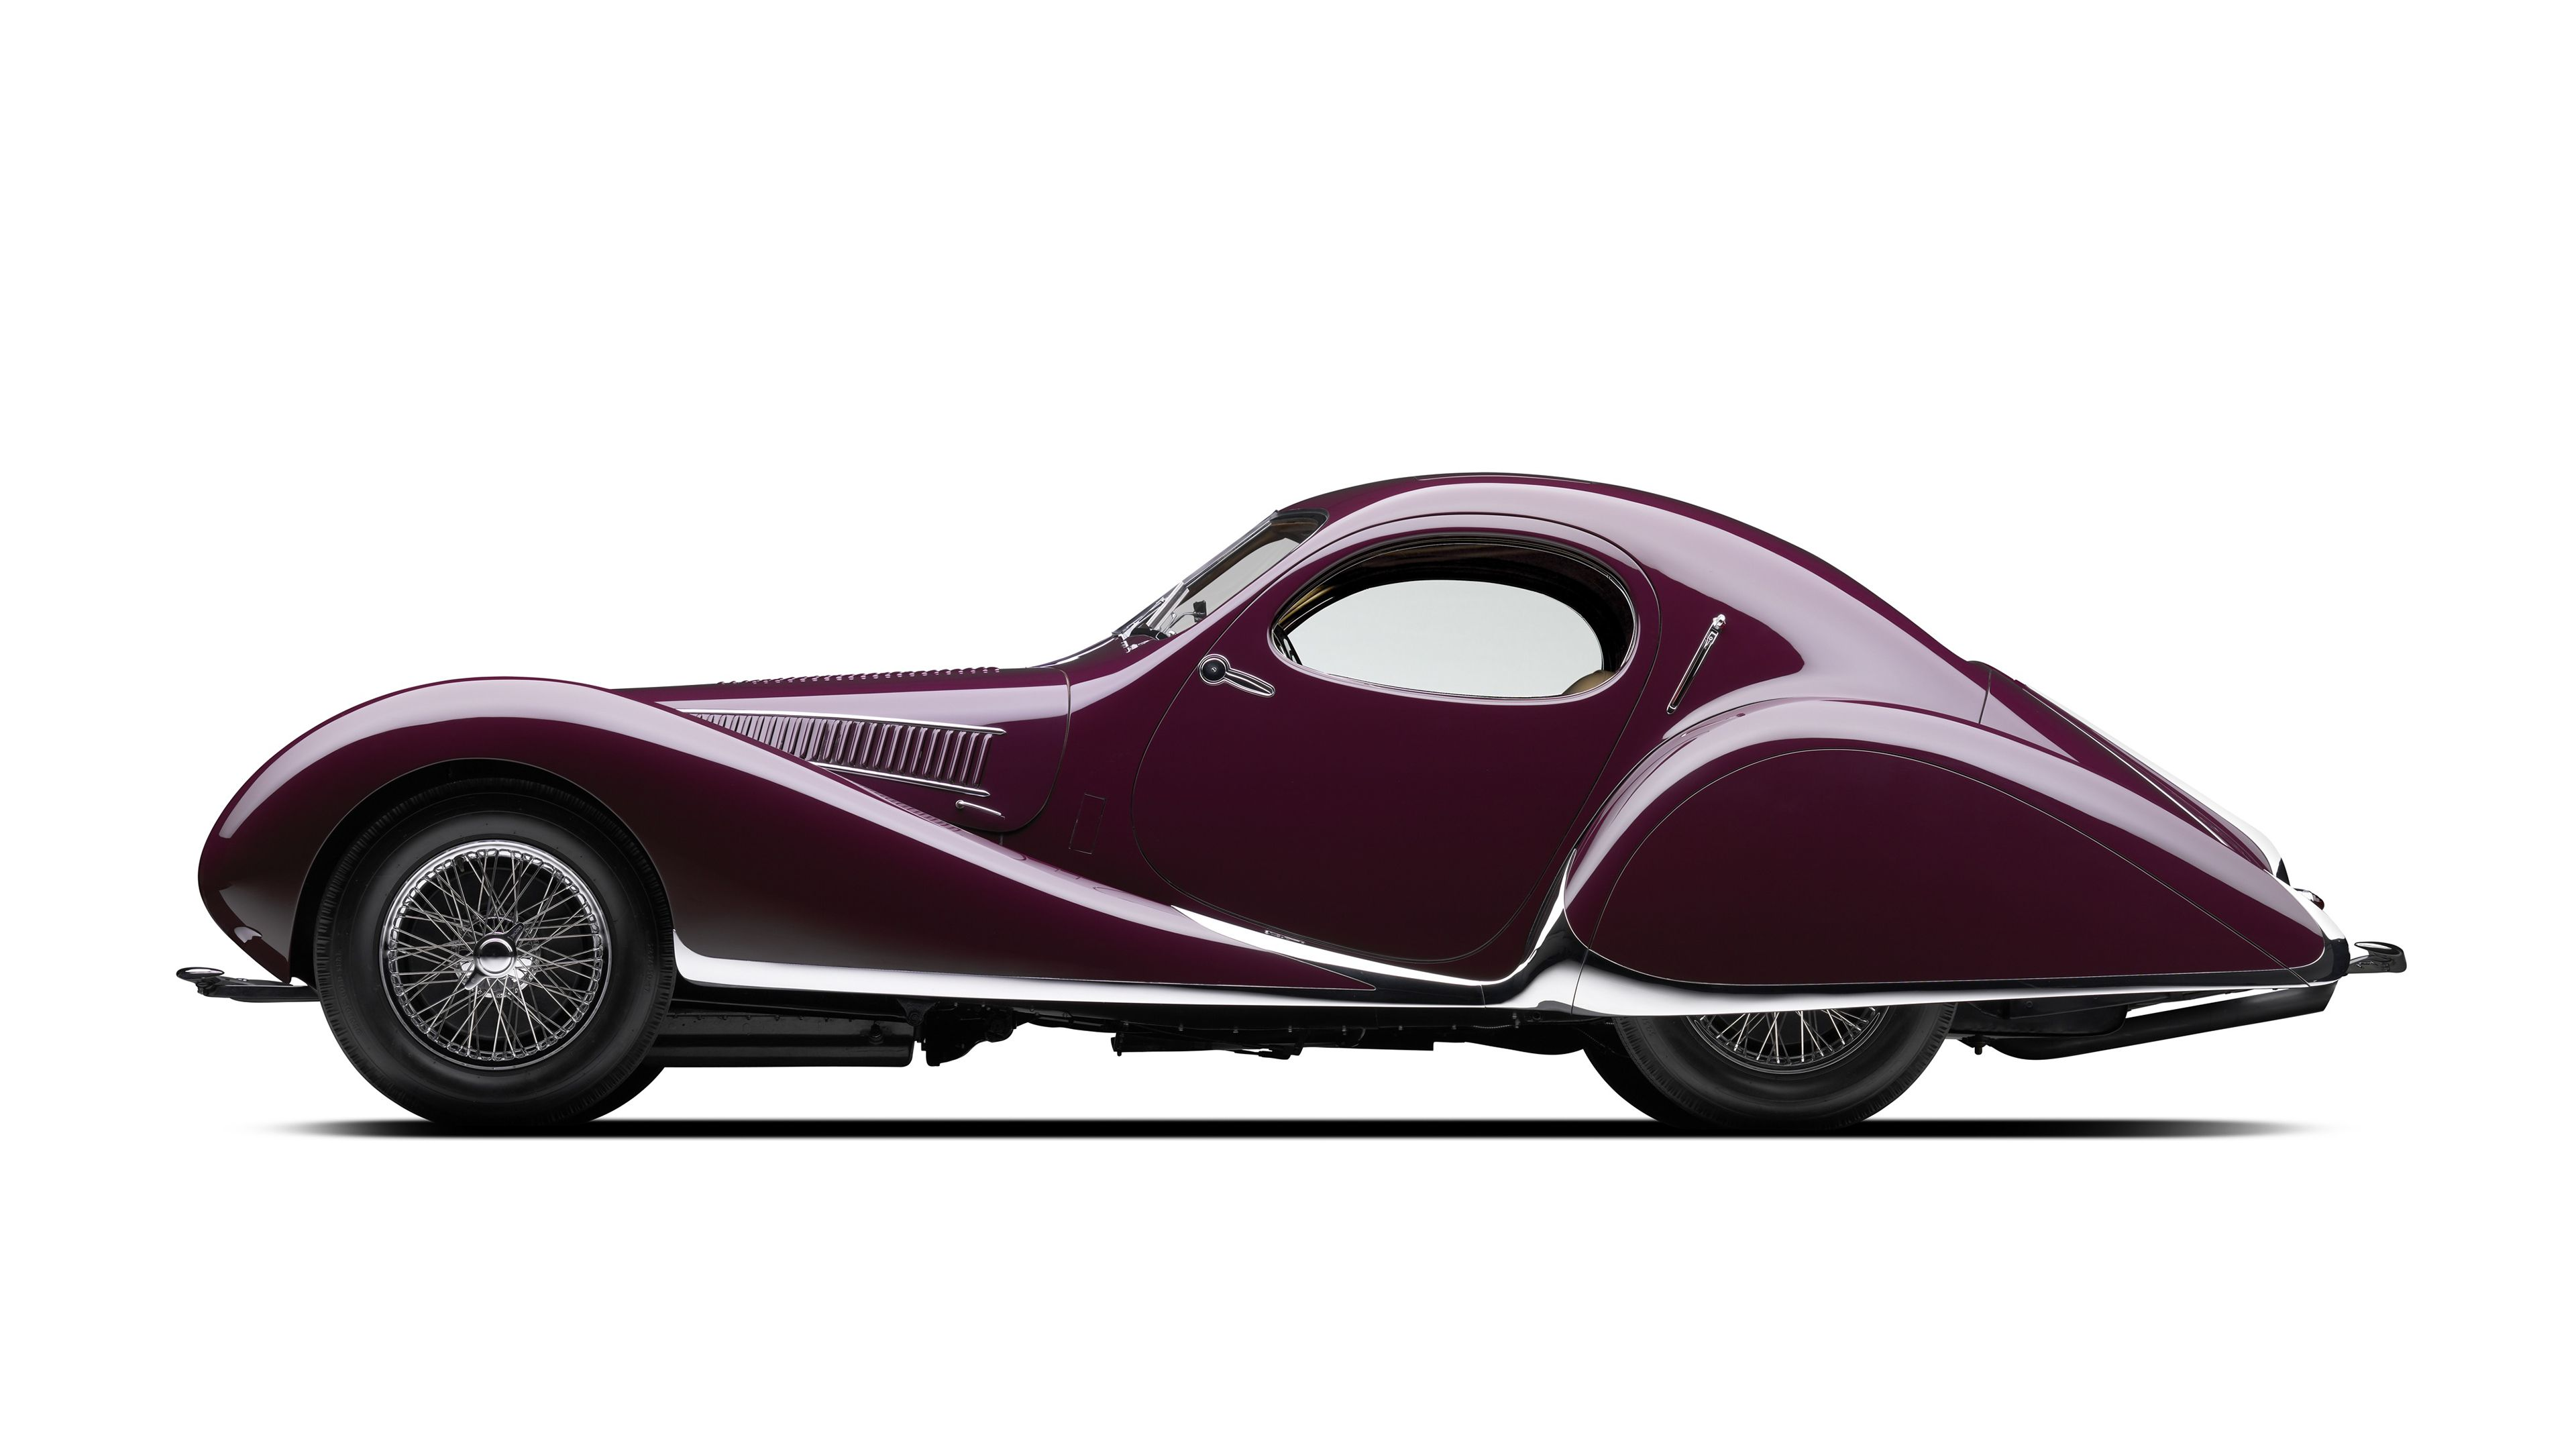 Talbot-Lago Type 150-C-S 1937 | Mullin Automotive Museum | Pinterest ...